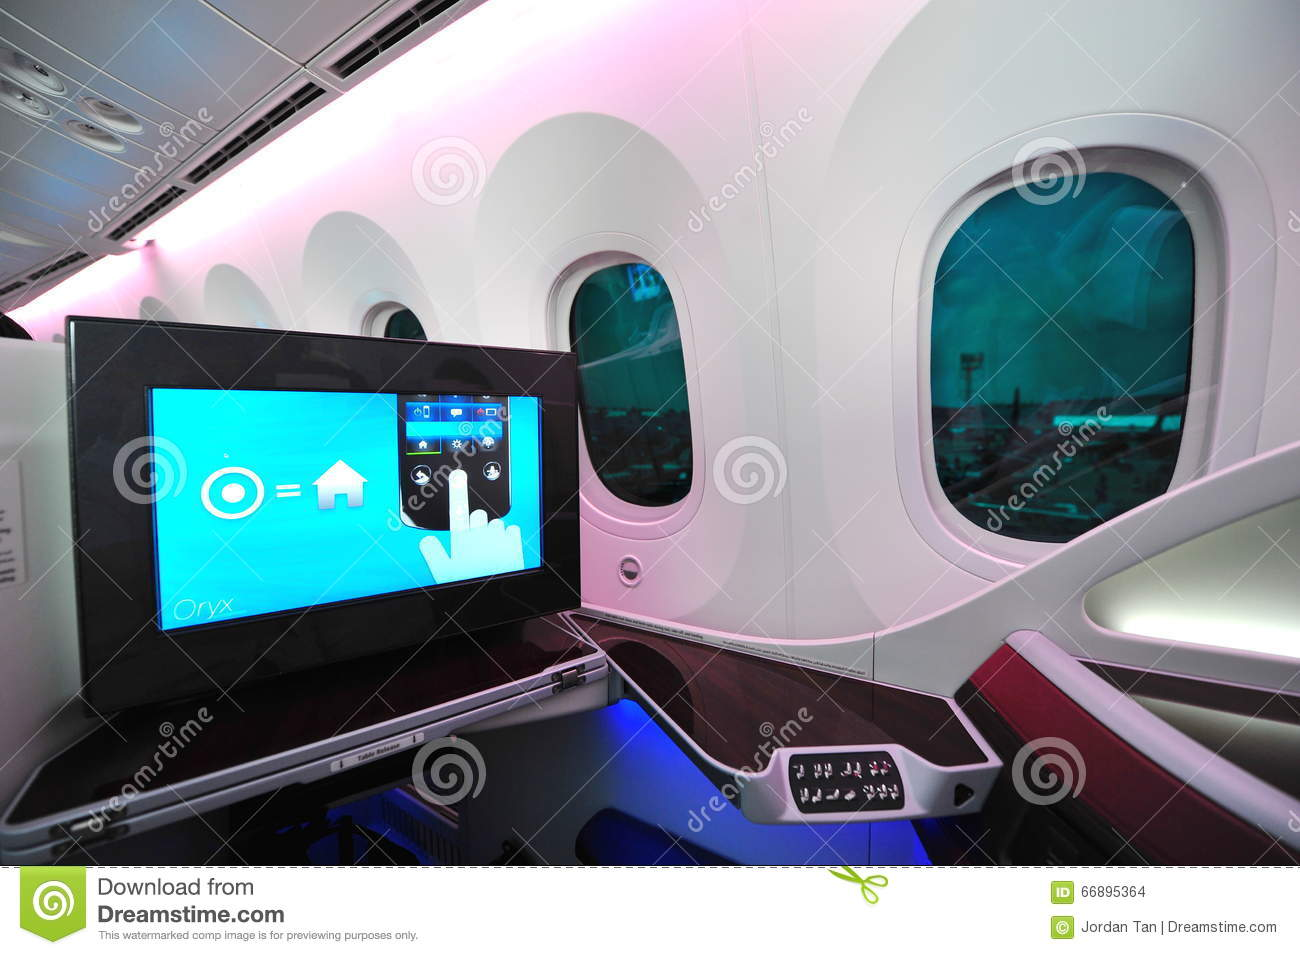 Business class seat and inflight entertainment system onboard Qatar Airways Boeing 787-8 Dreamliner at Singapore Airshow